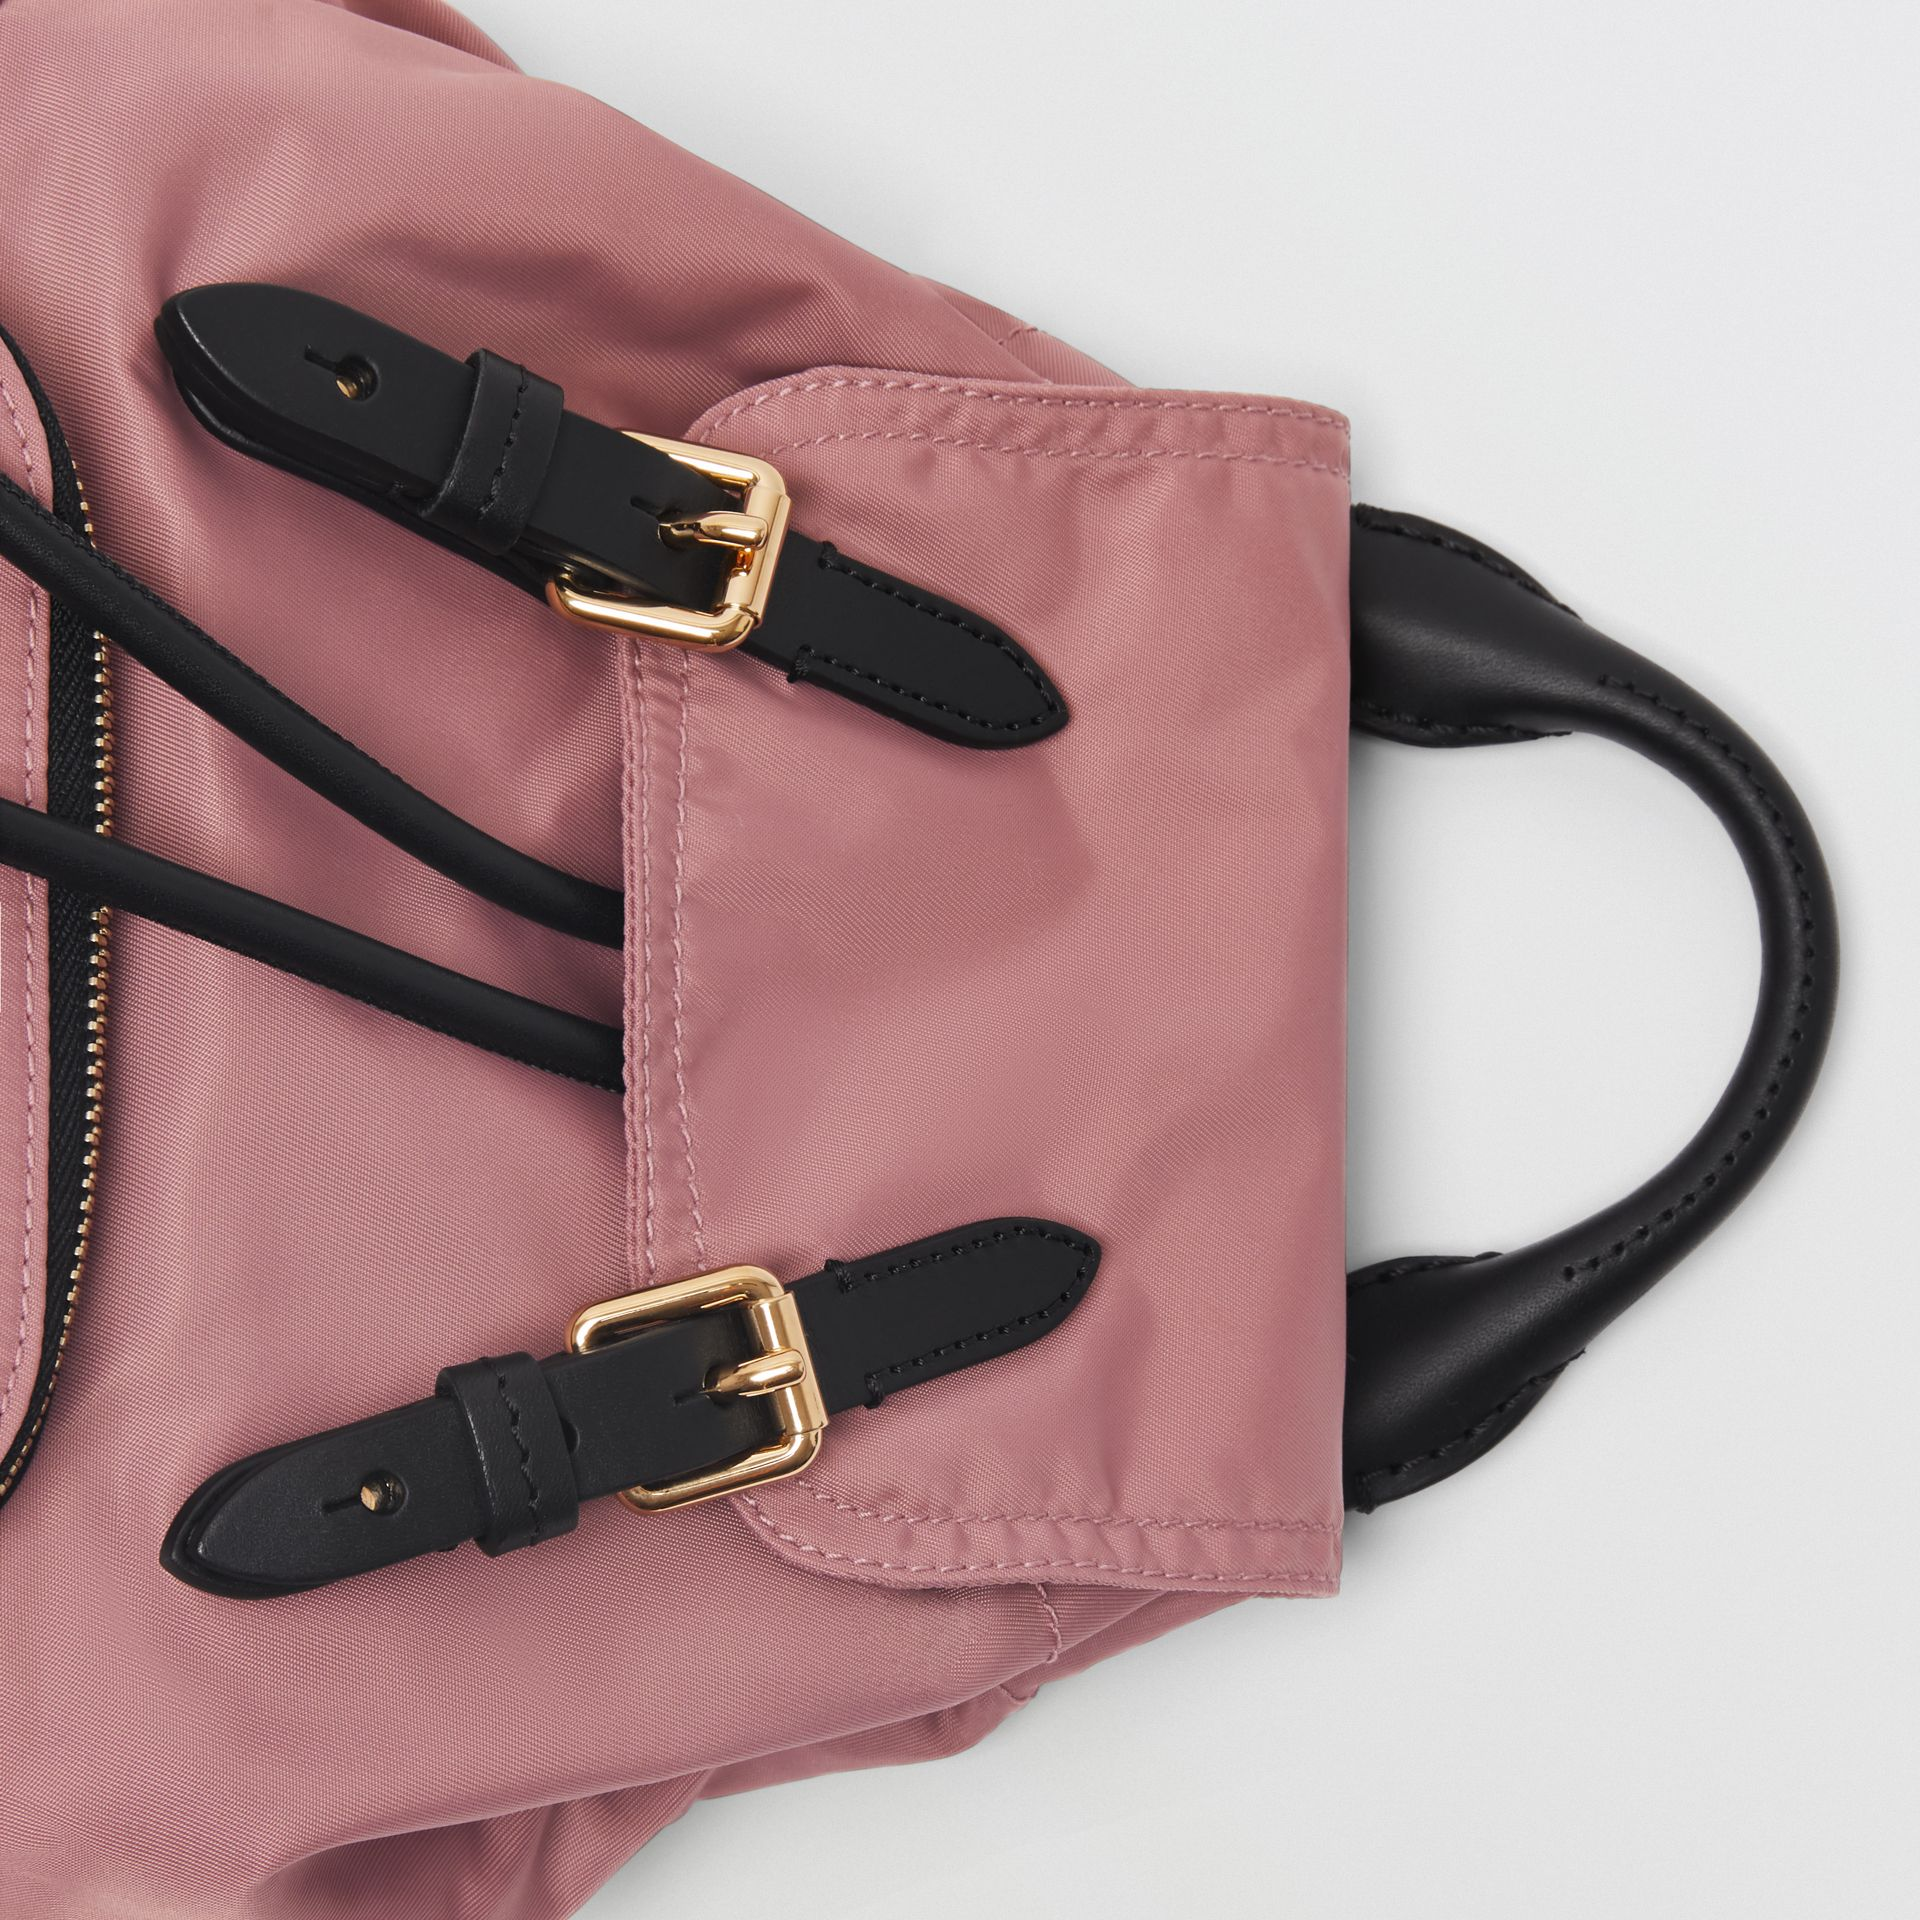 The Small Crossbody Rucksack in Nylon in Mauve Pink - Women | Burberry Canada - gallery image 1